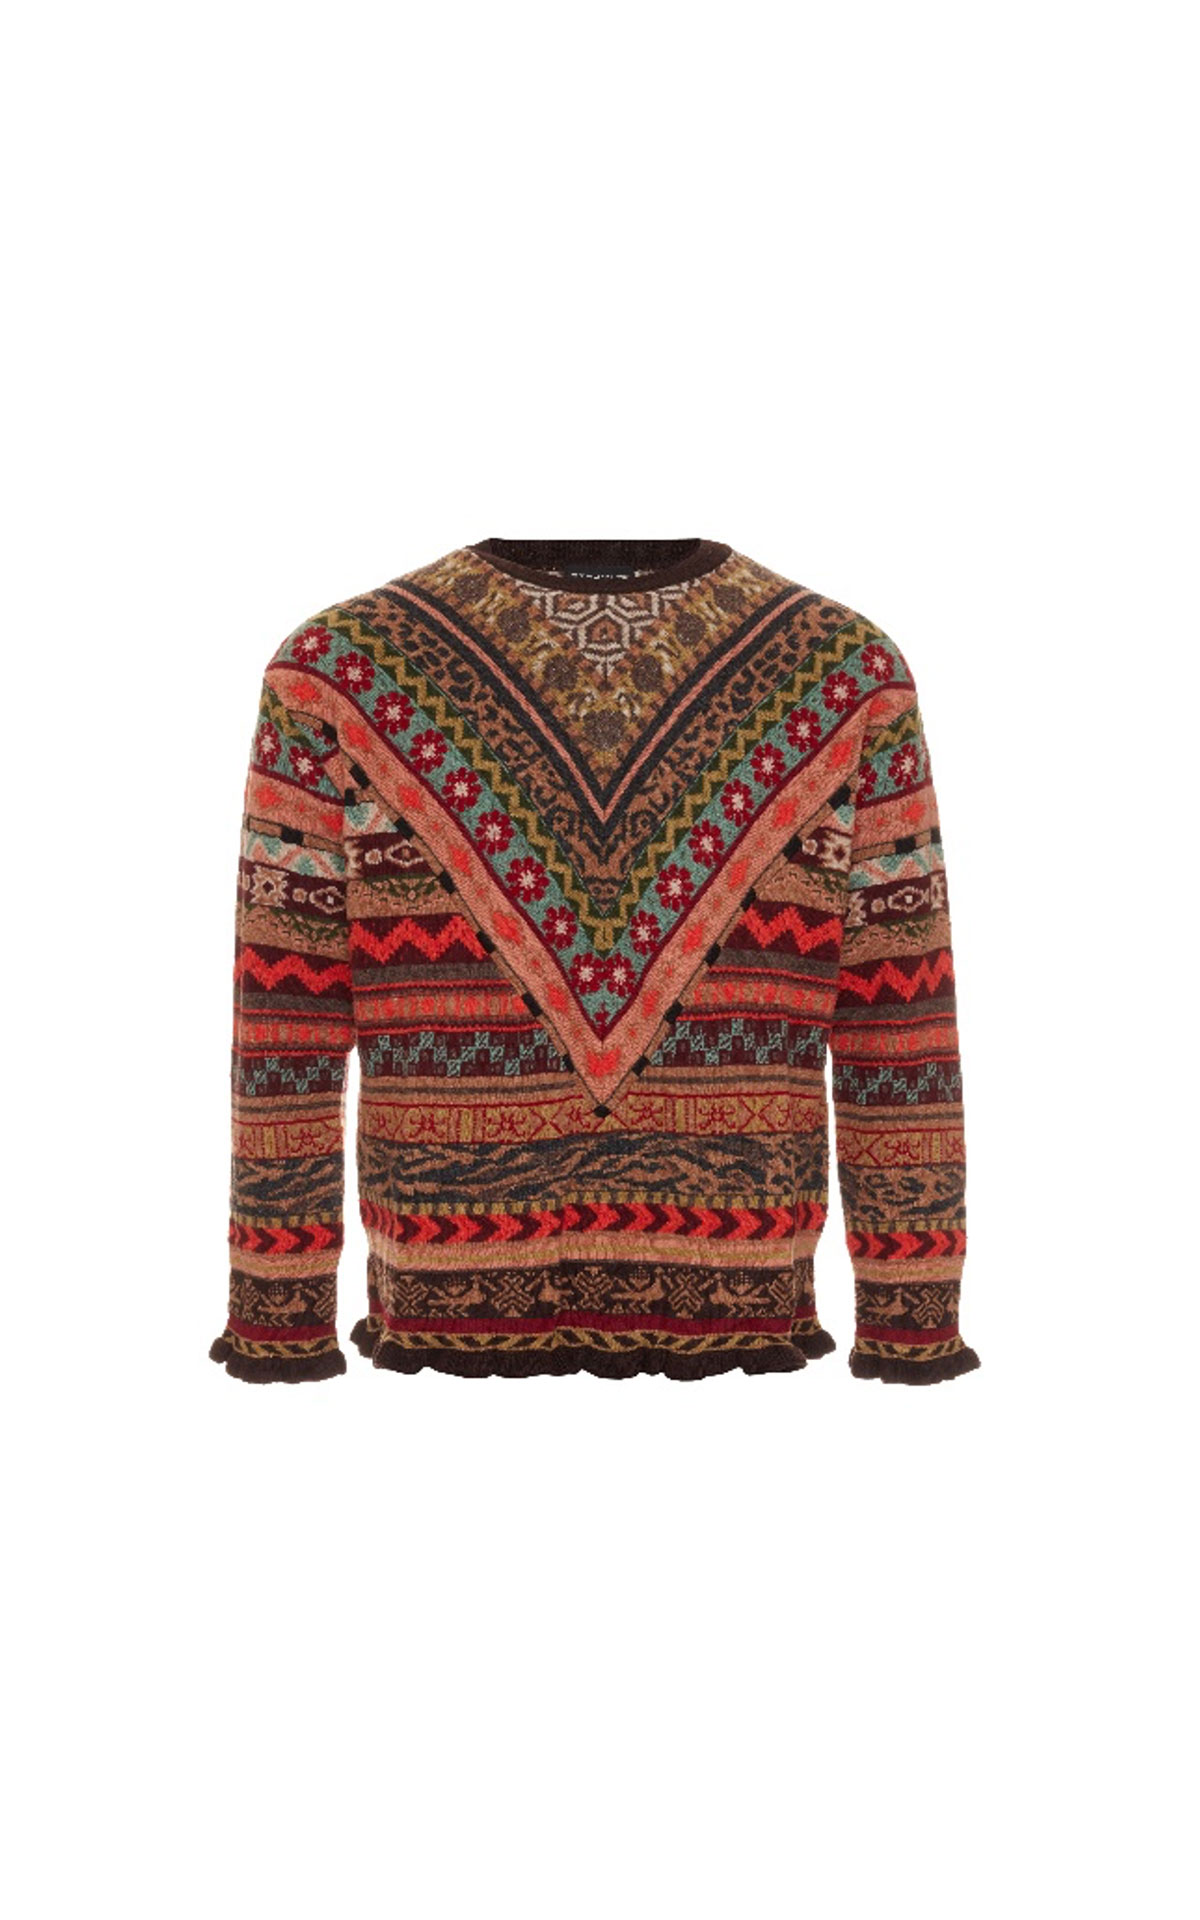 Etro Brown knitwear from Bicester Village